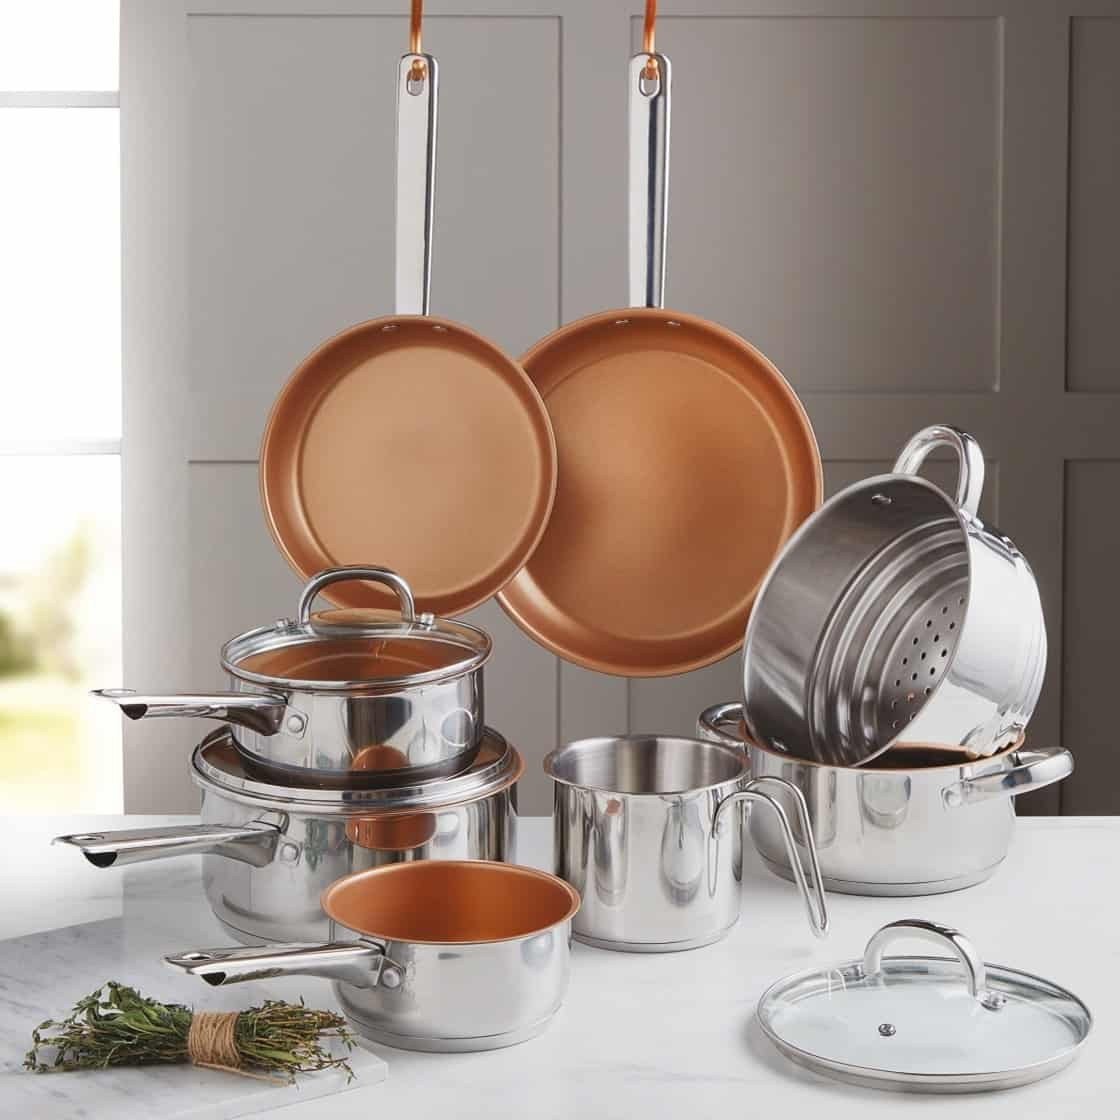 are red copper pans safe